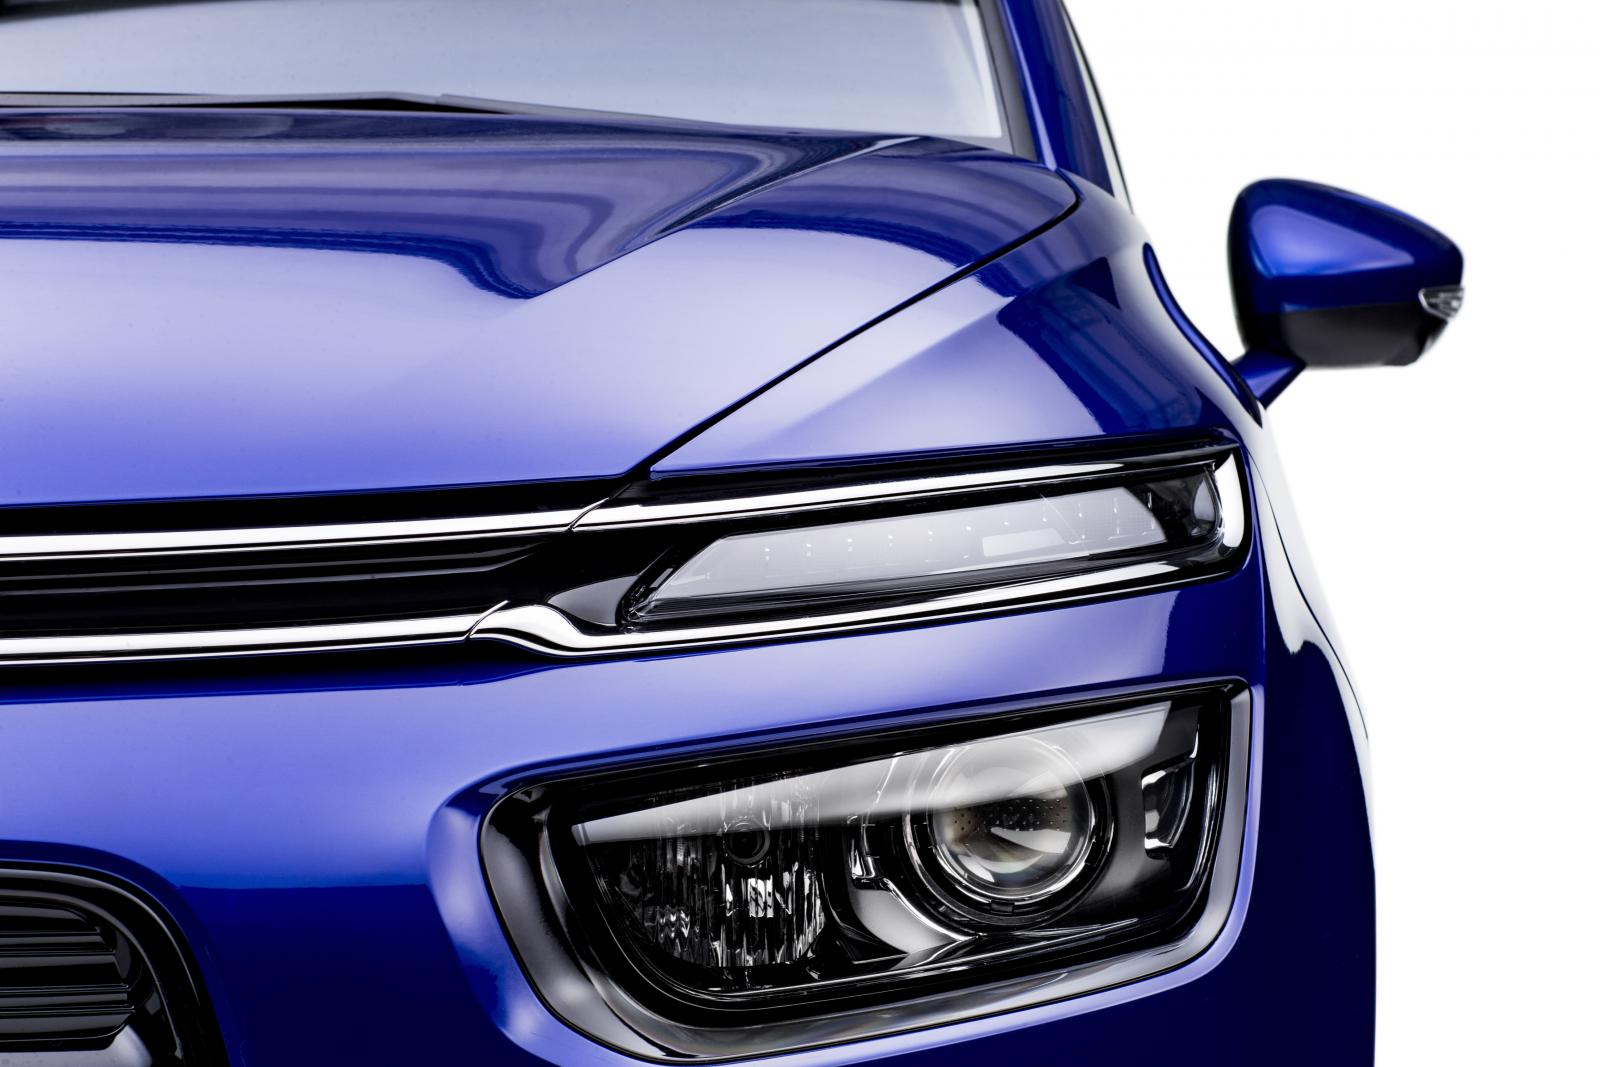 2. sukupolven C4 Picasso